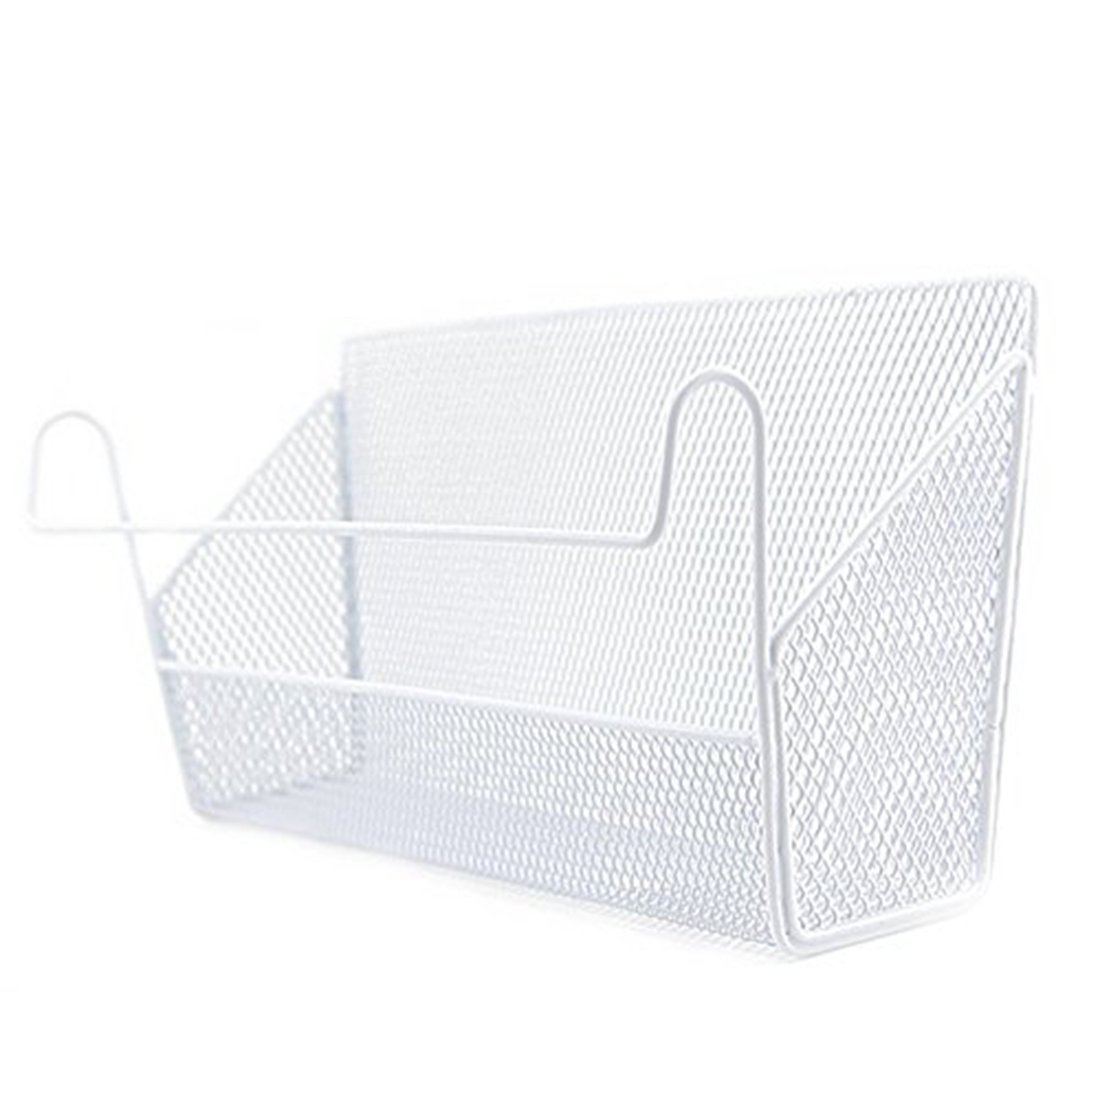 Haoun Bedside Hanging Storage Basket Office Desk Dormitory Iron Mesh Origanizer Caddy for Book Phone Magazine Holder - White